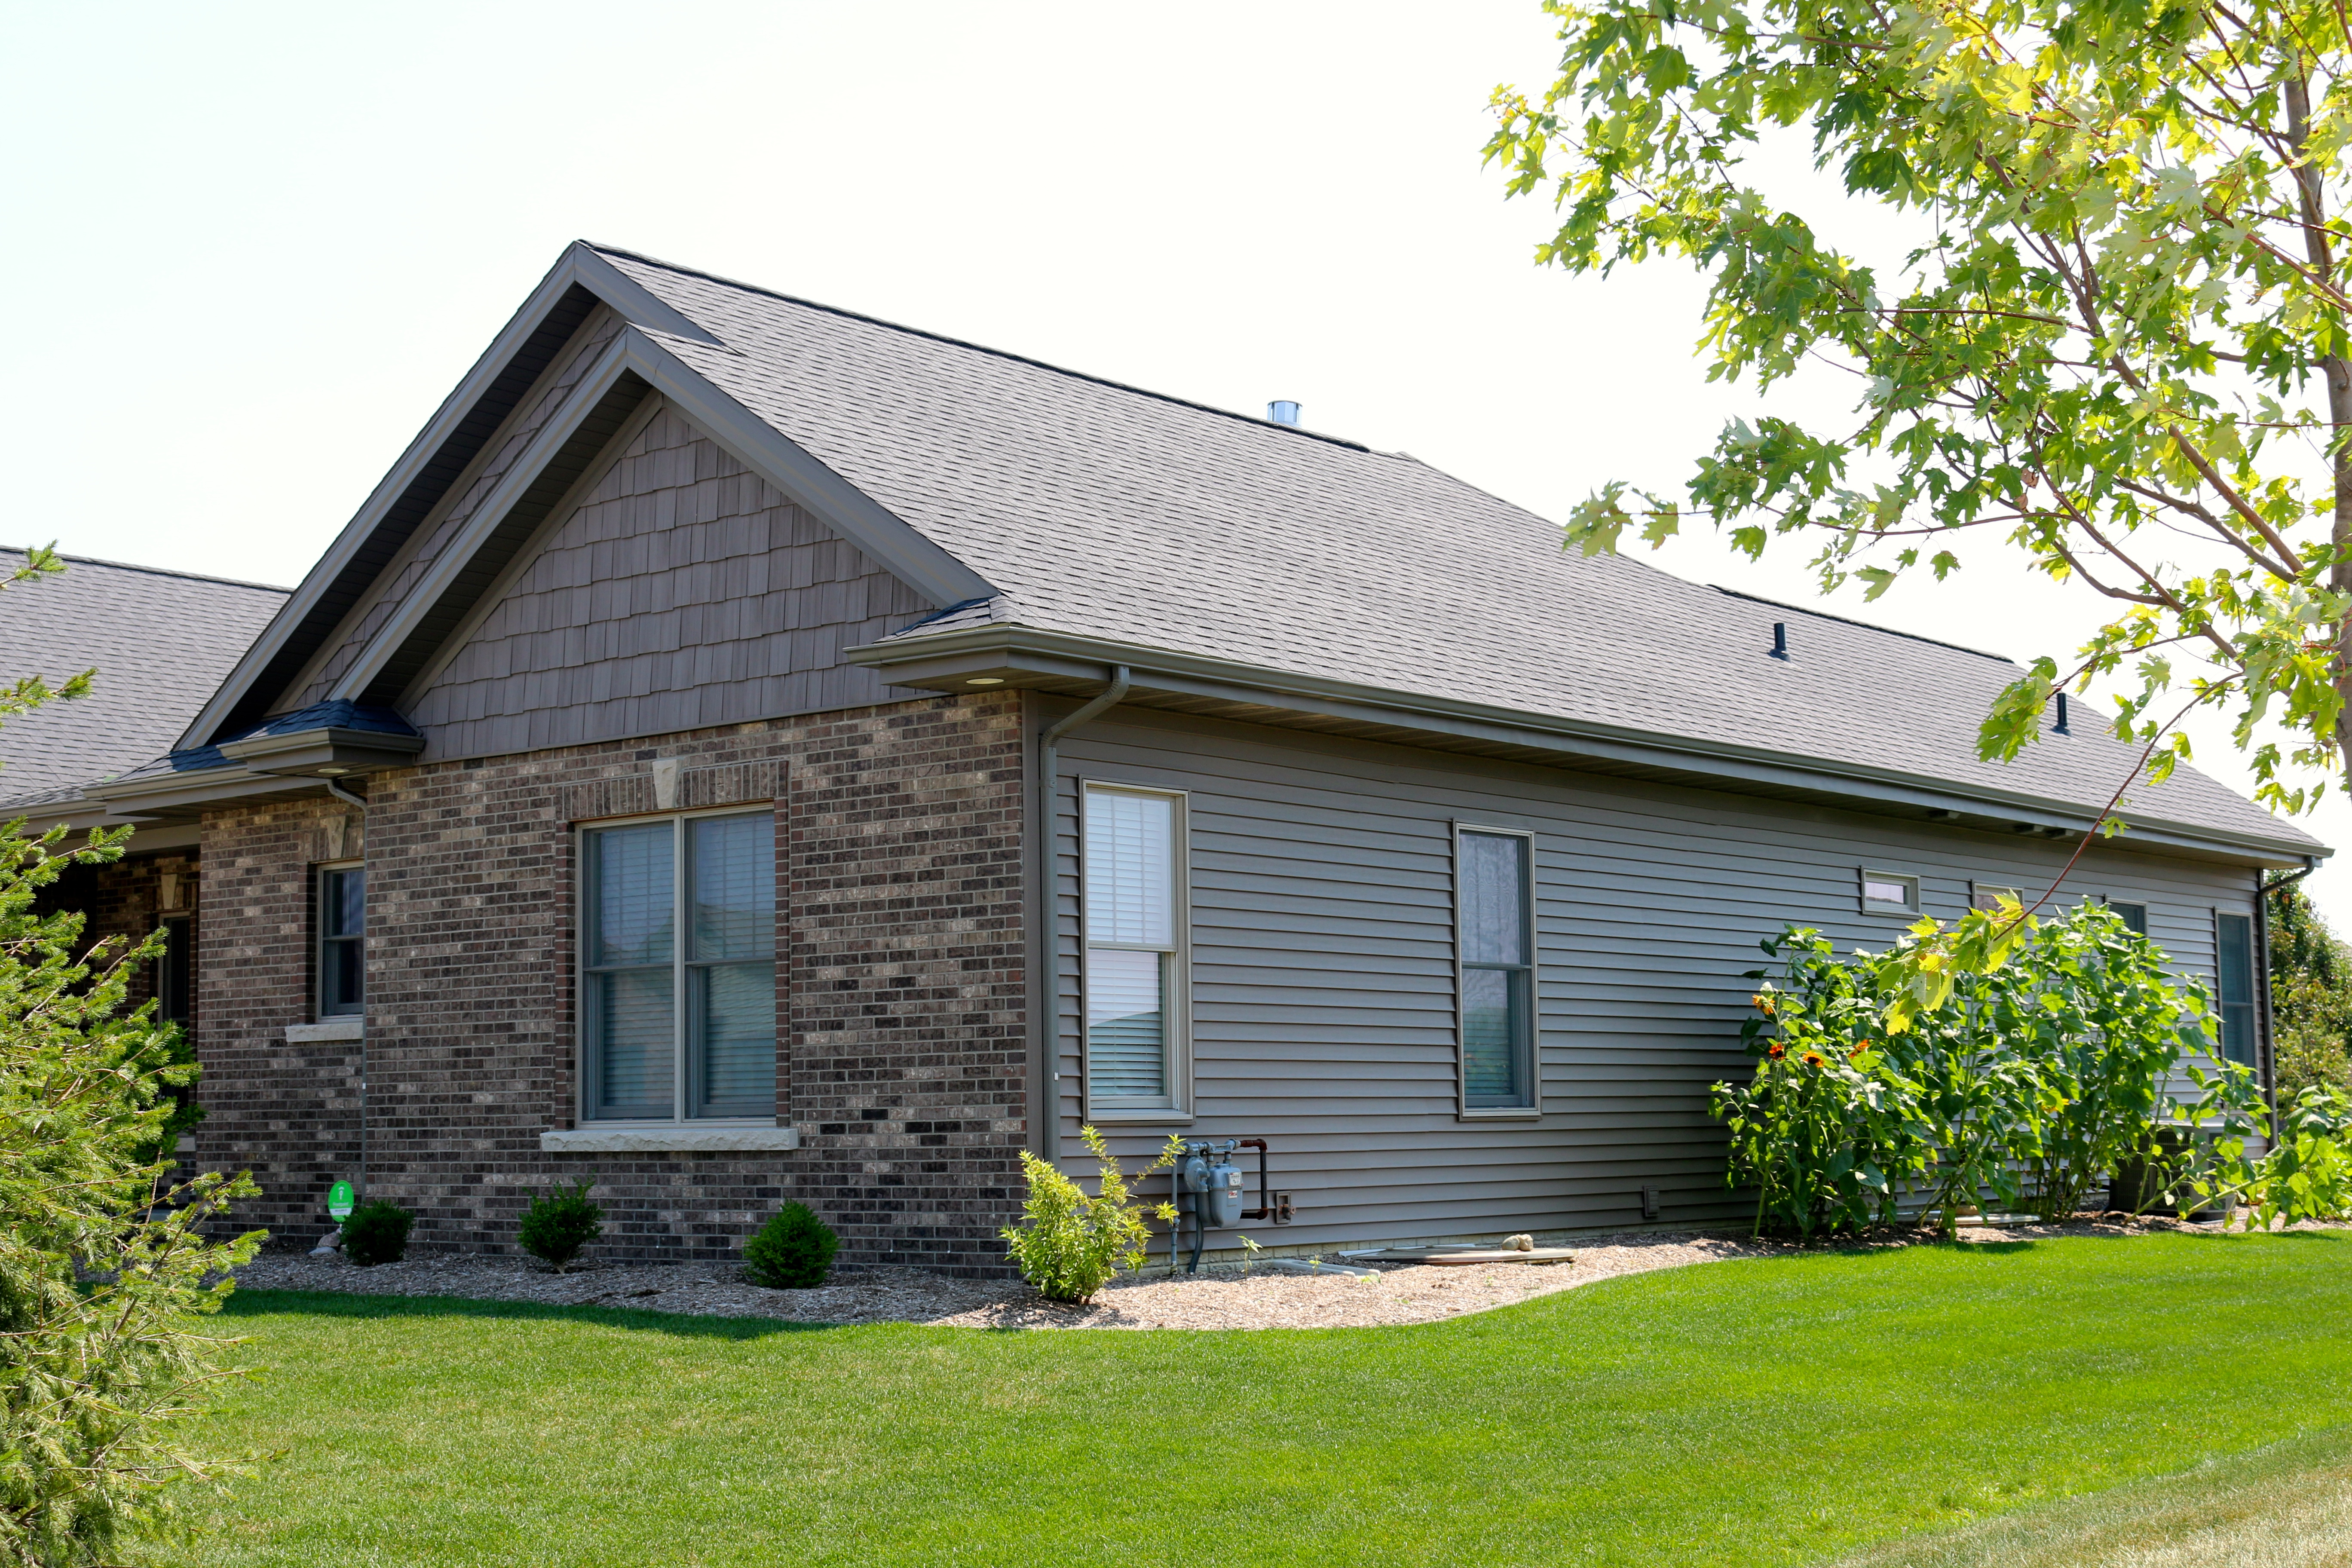 Montana Suede Siding And Shakes With Moire Black Roof In Bloomington Il Carlson Exteriors Inc